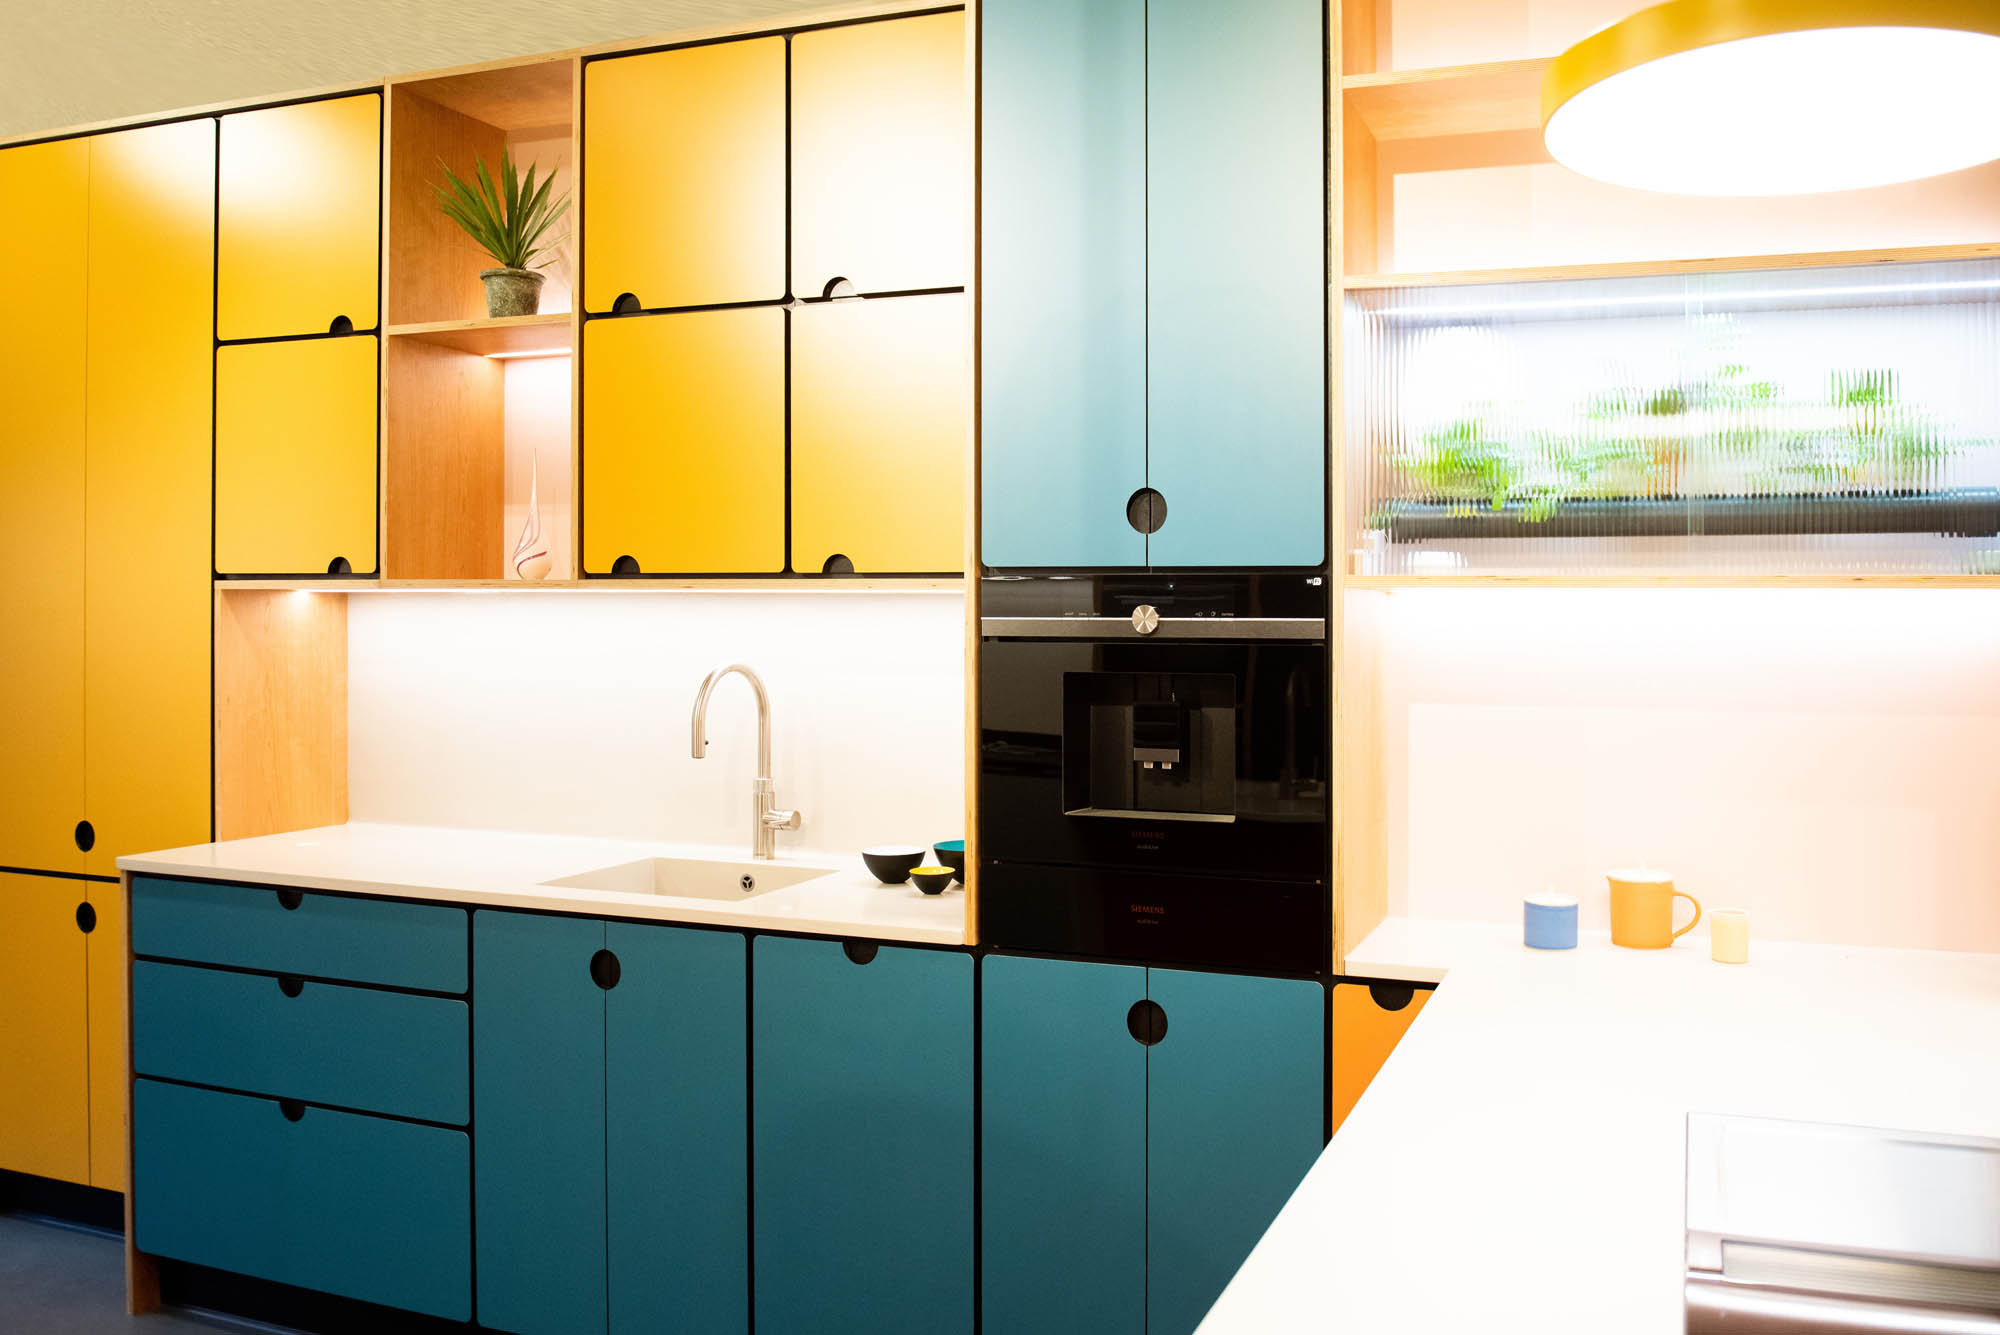 Valchromat Kitchen in yellow and blue colour